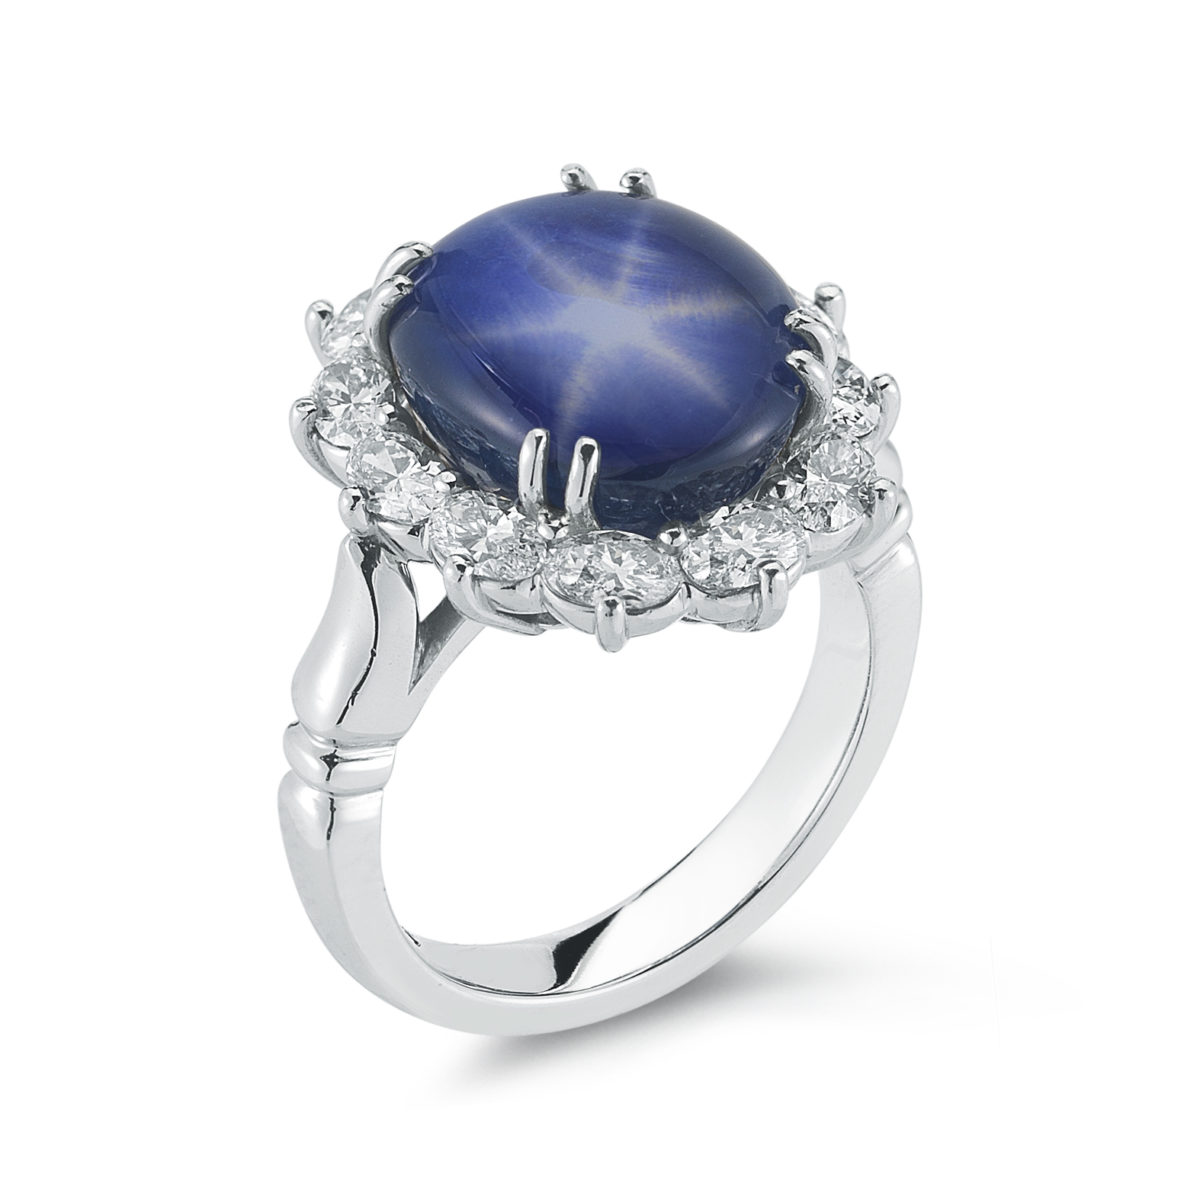 Well-liked 10.60 Carat Star Sapphire & Diamond Ring | Marshall Pierce  ET06